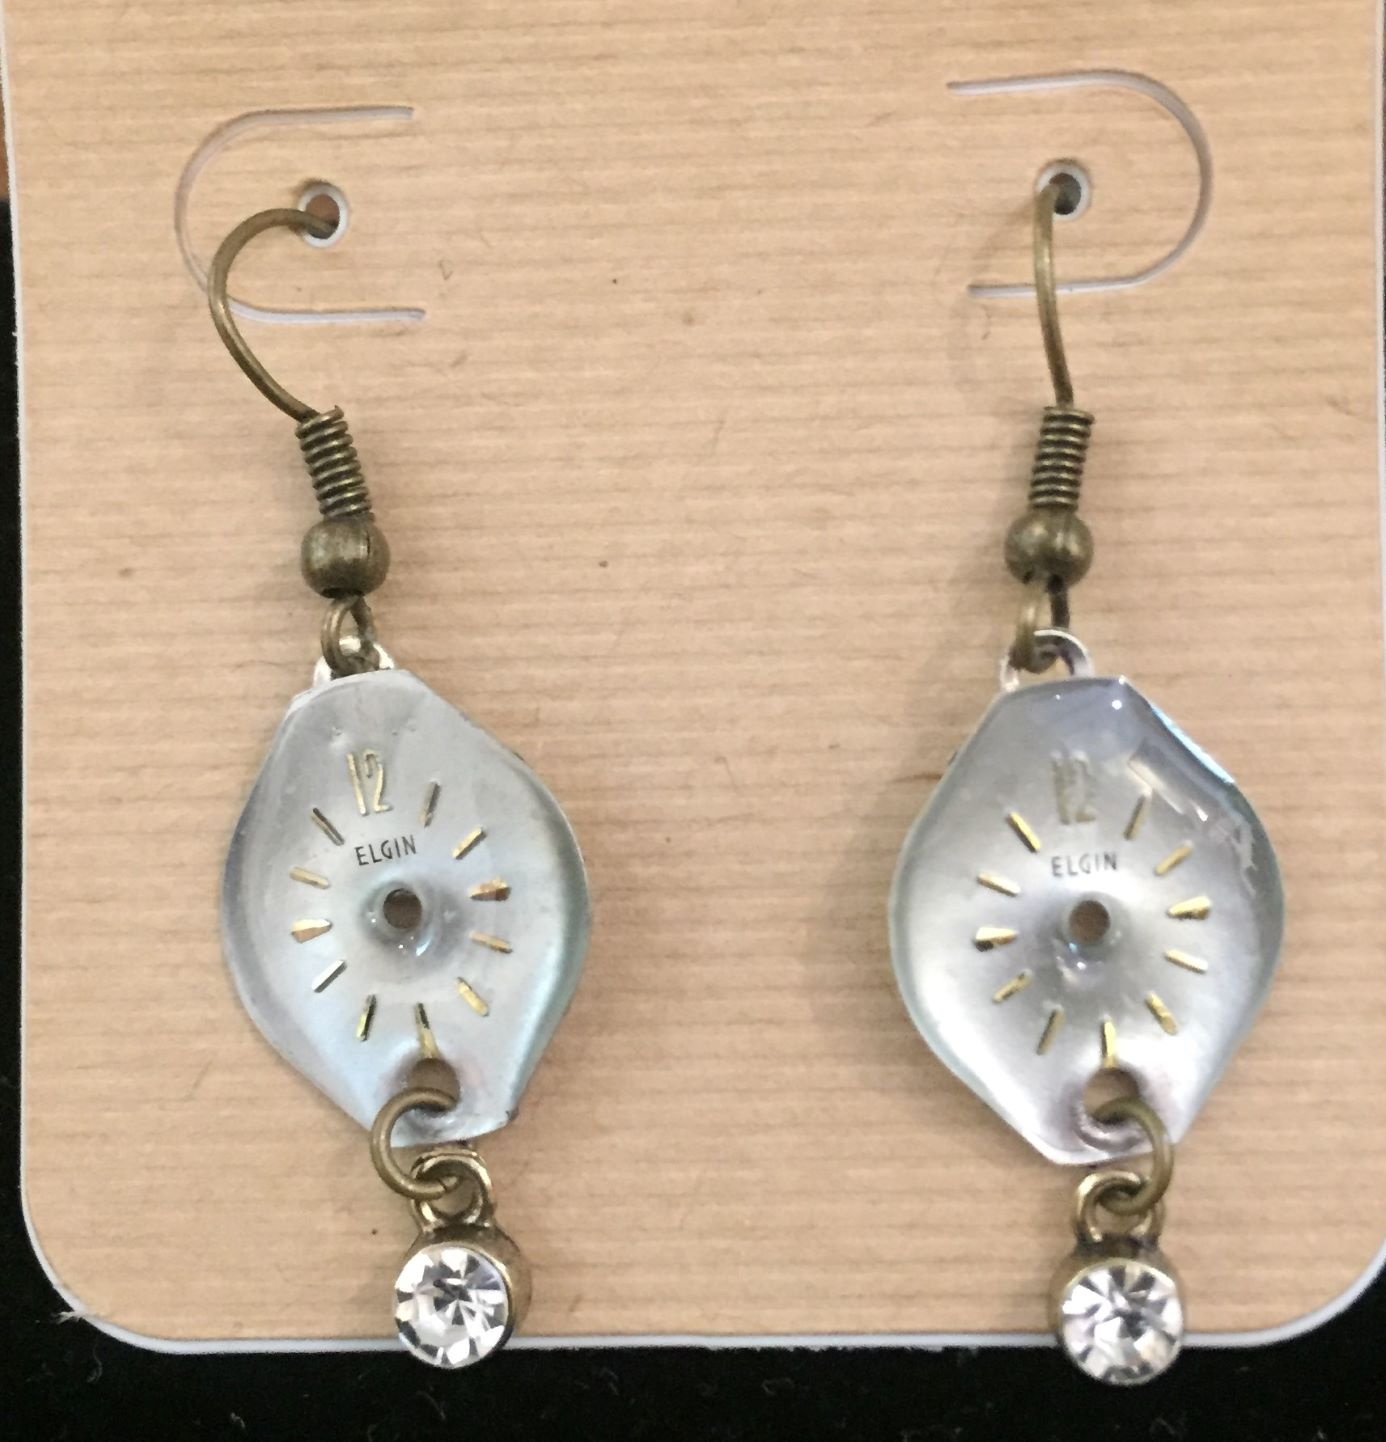 Earrings made with Elgin watch faces